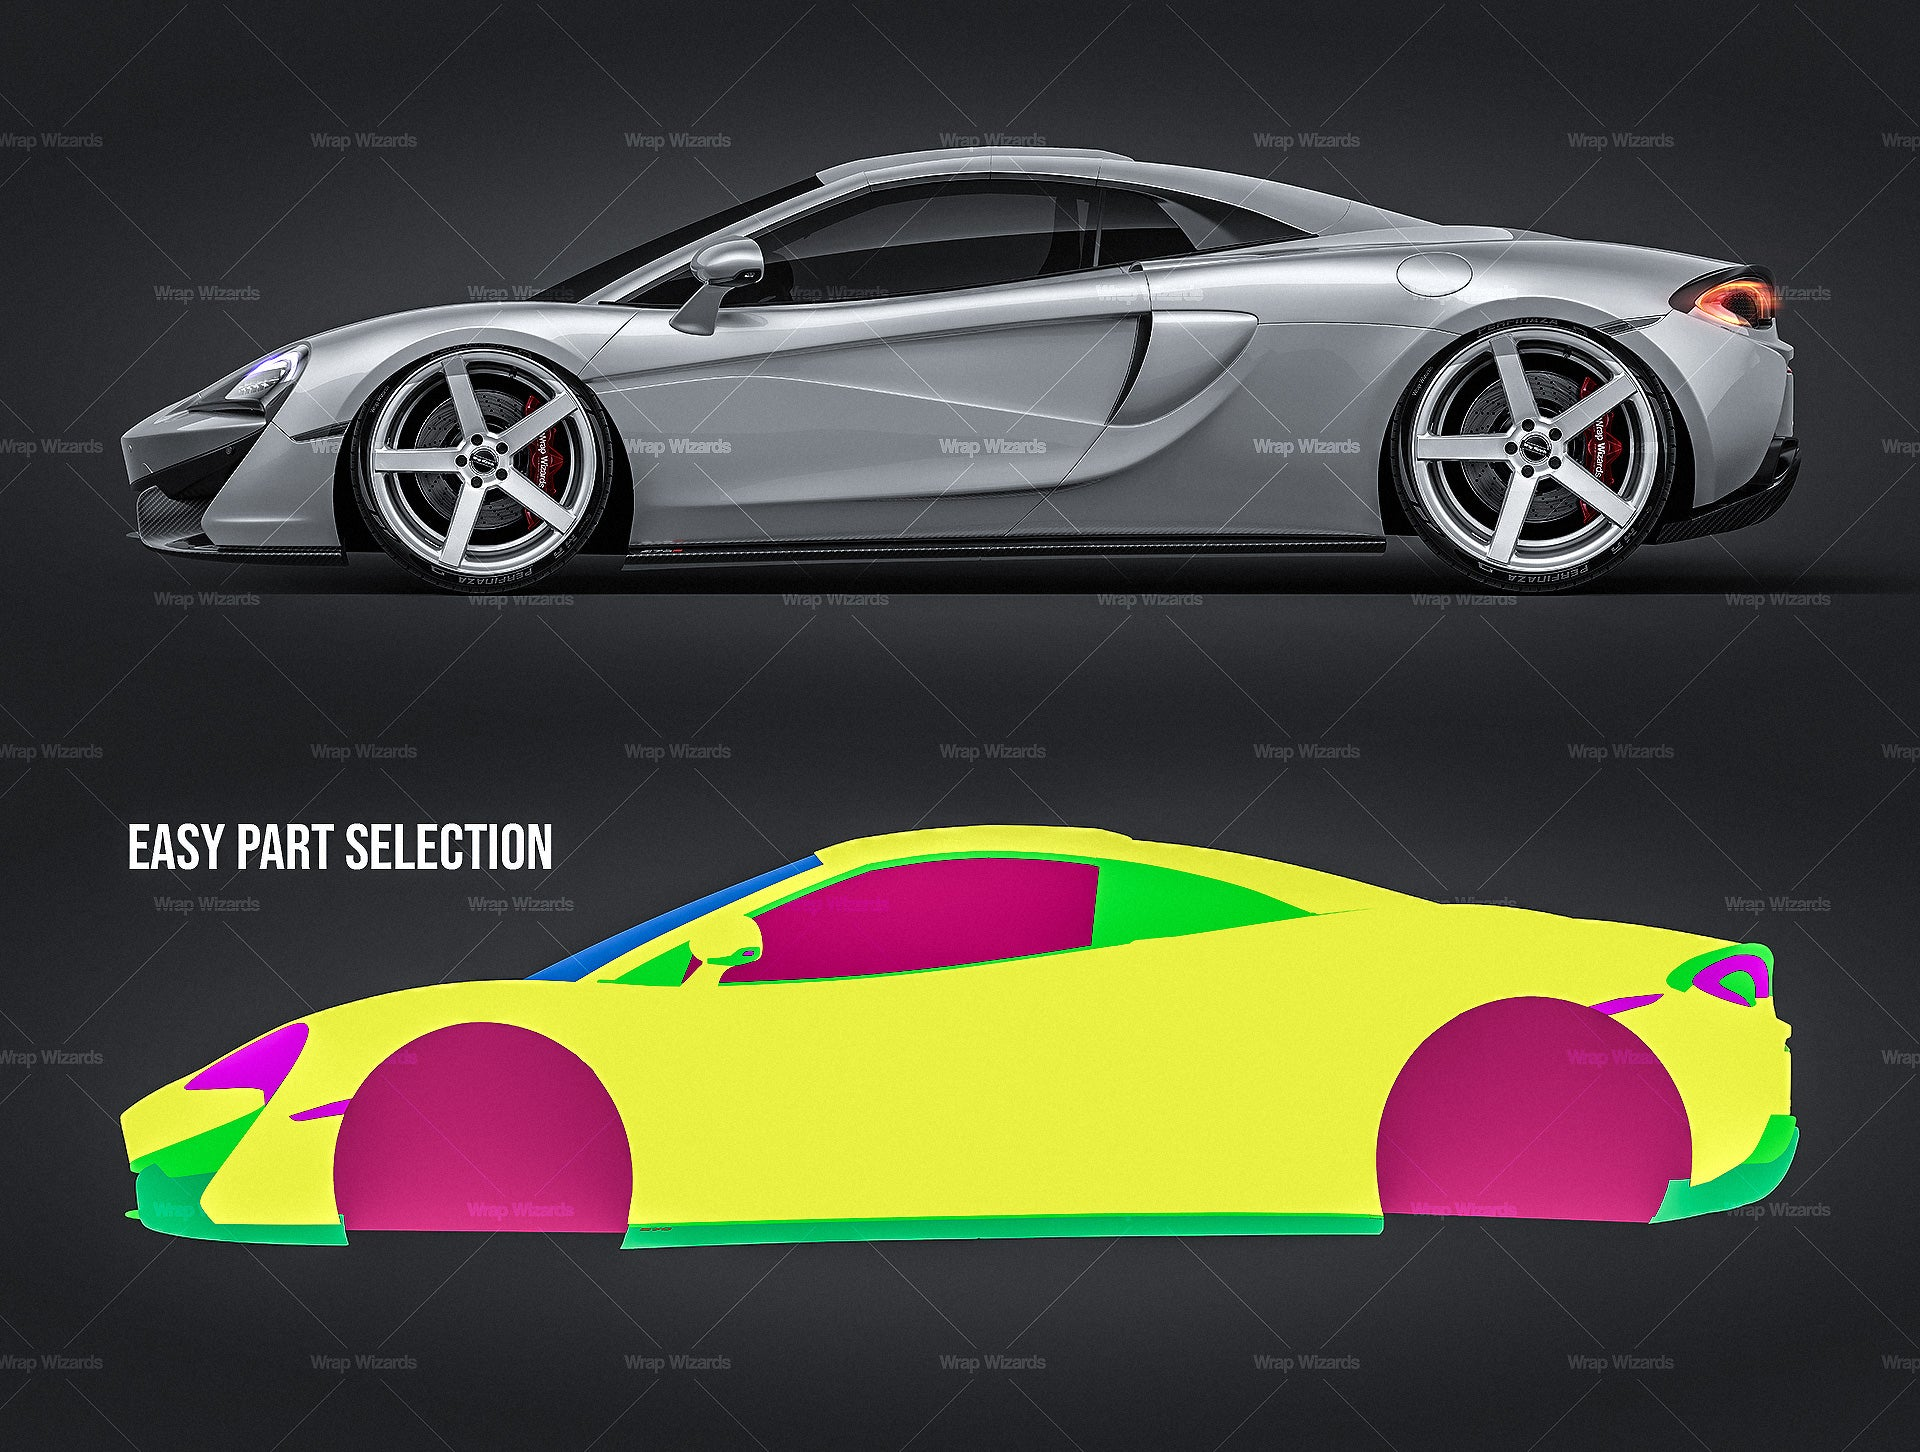 McLaren 570S Spider 2018 all sides Car Mockup Template.psd